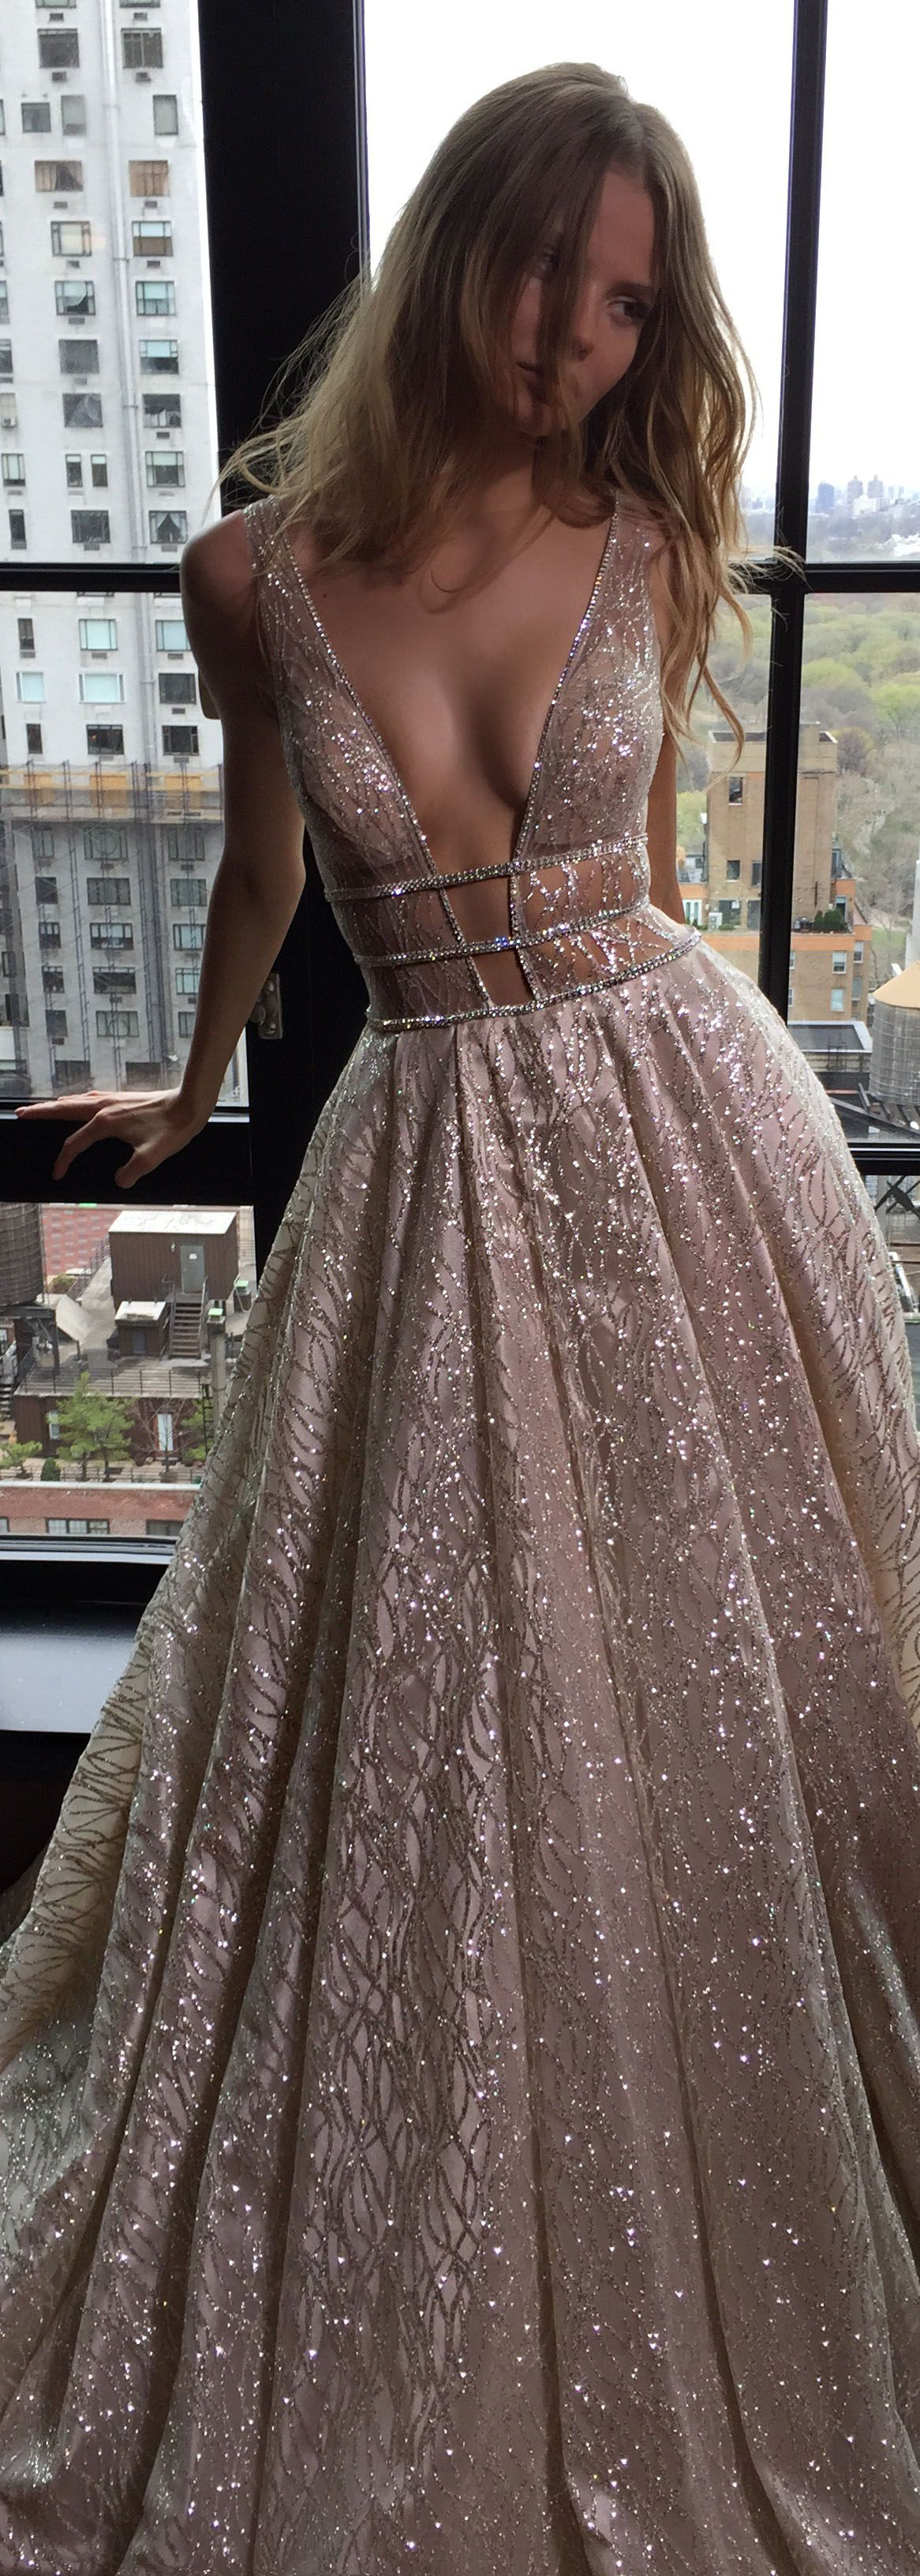 Rose gold and lots of sparkle this bertabridal gown is so